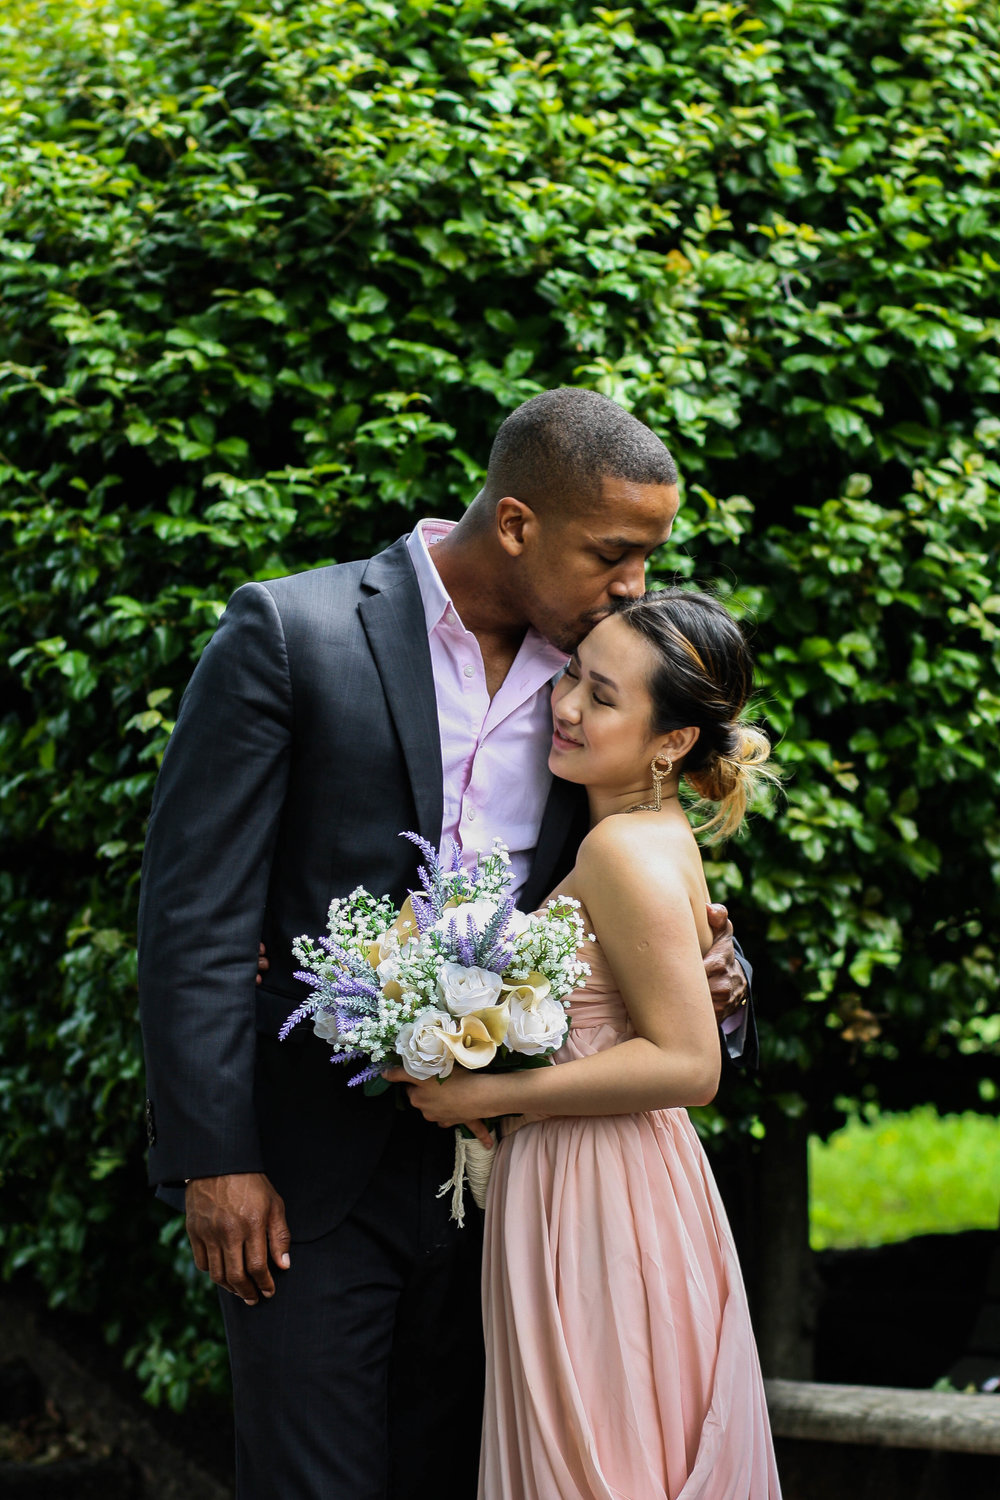 In11Views Photography -Tenneal McNair - Washington DC - Maryland Photographer - Bloggers - Wedding Photographer - Engagement - Elopement - Family - Lifestyle - Advertising